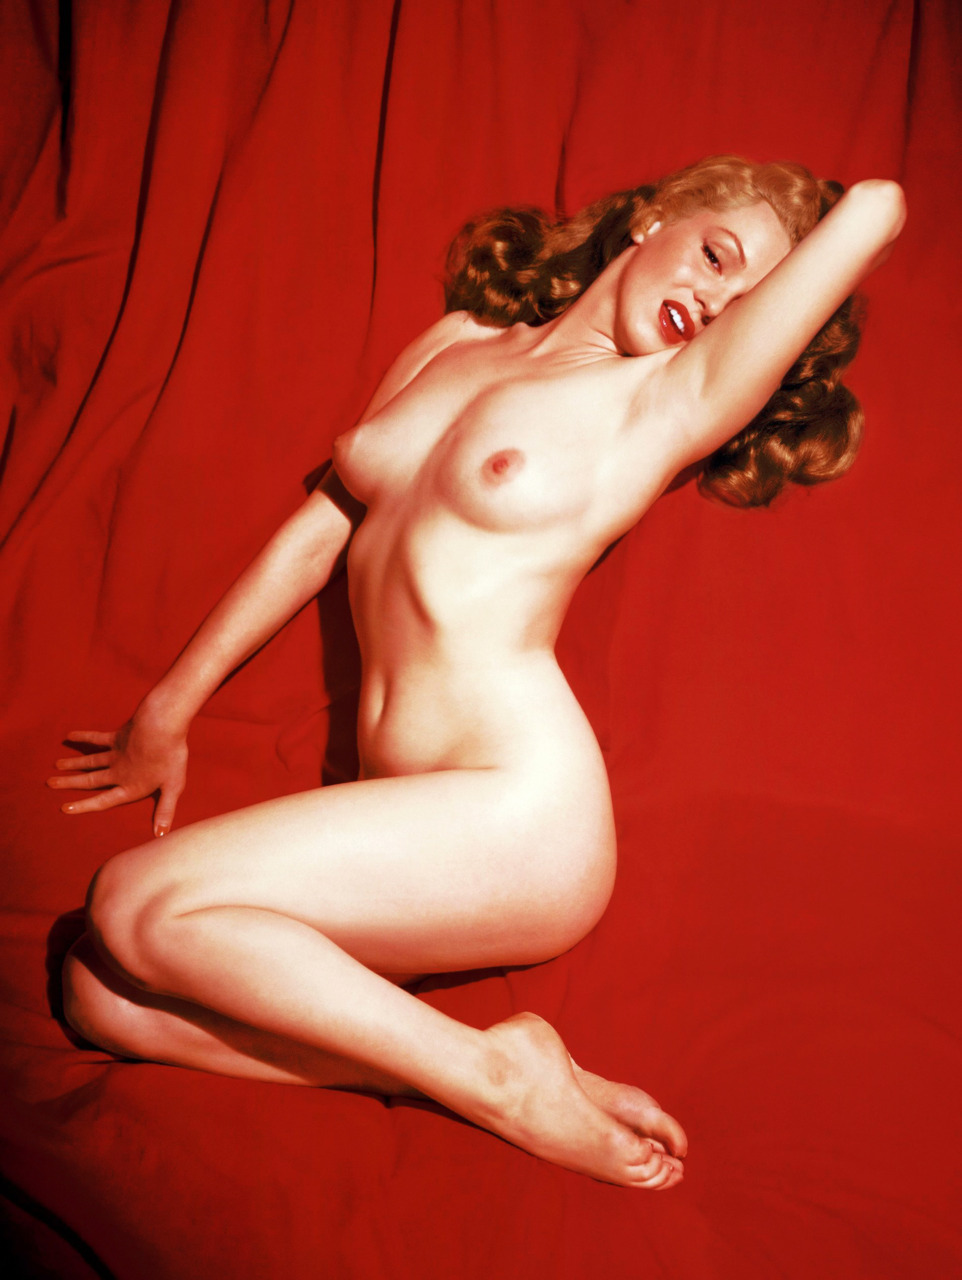 Marilyn monroe young naked curious question